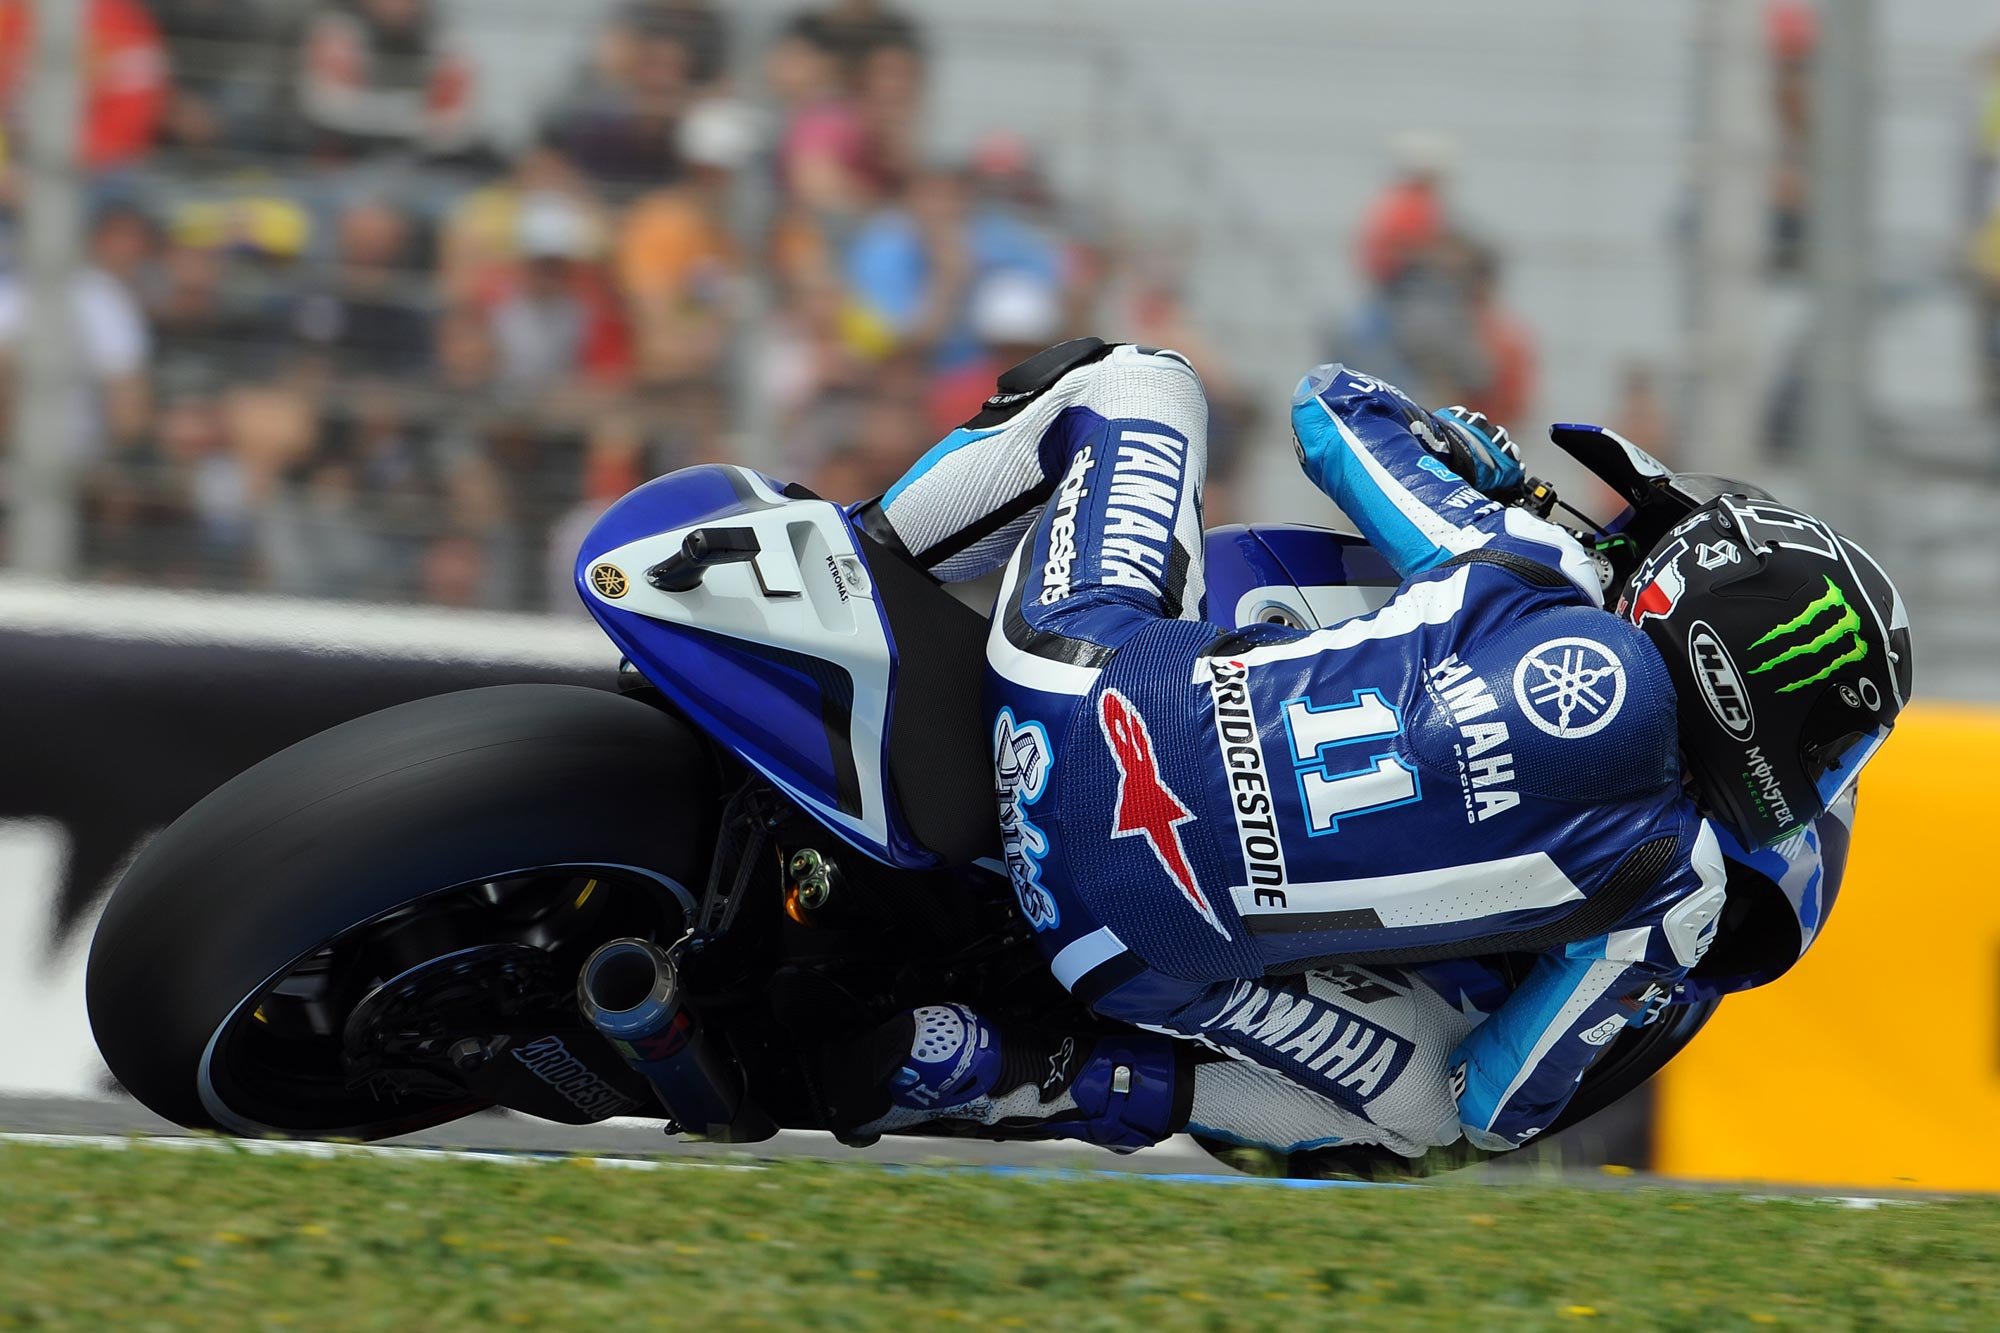 motogp racing Photo